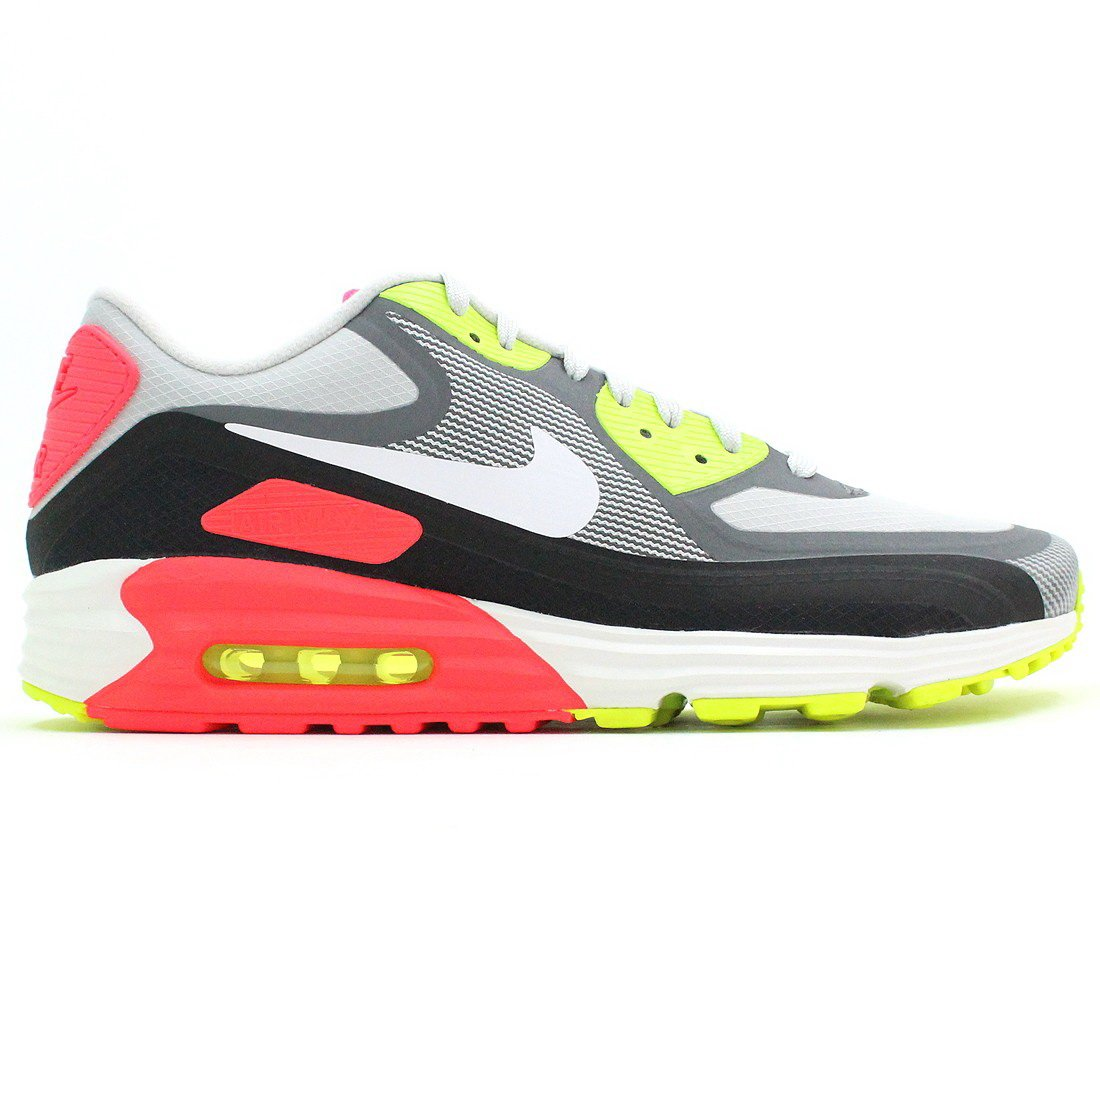 Nike Men's Air Max Lunar90 Wr Running Shoe